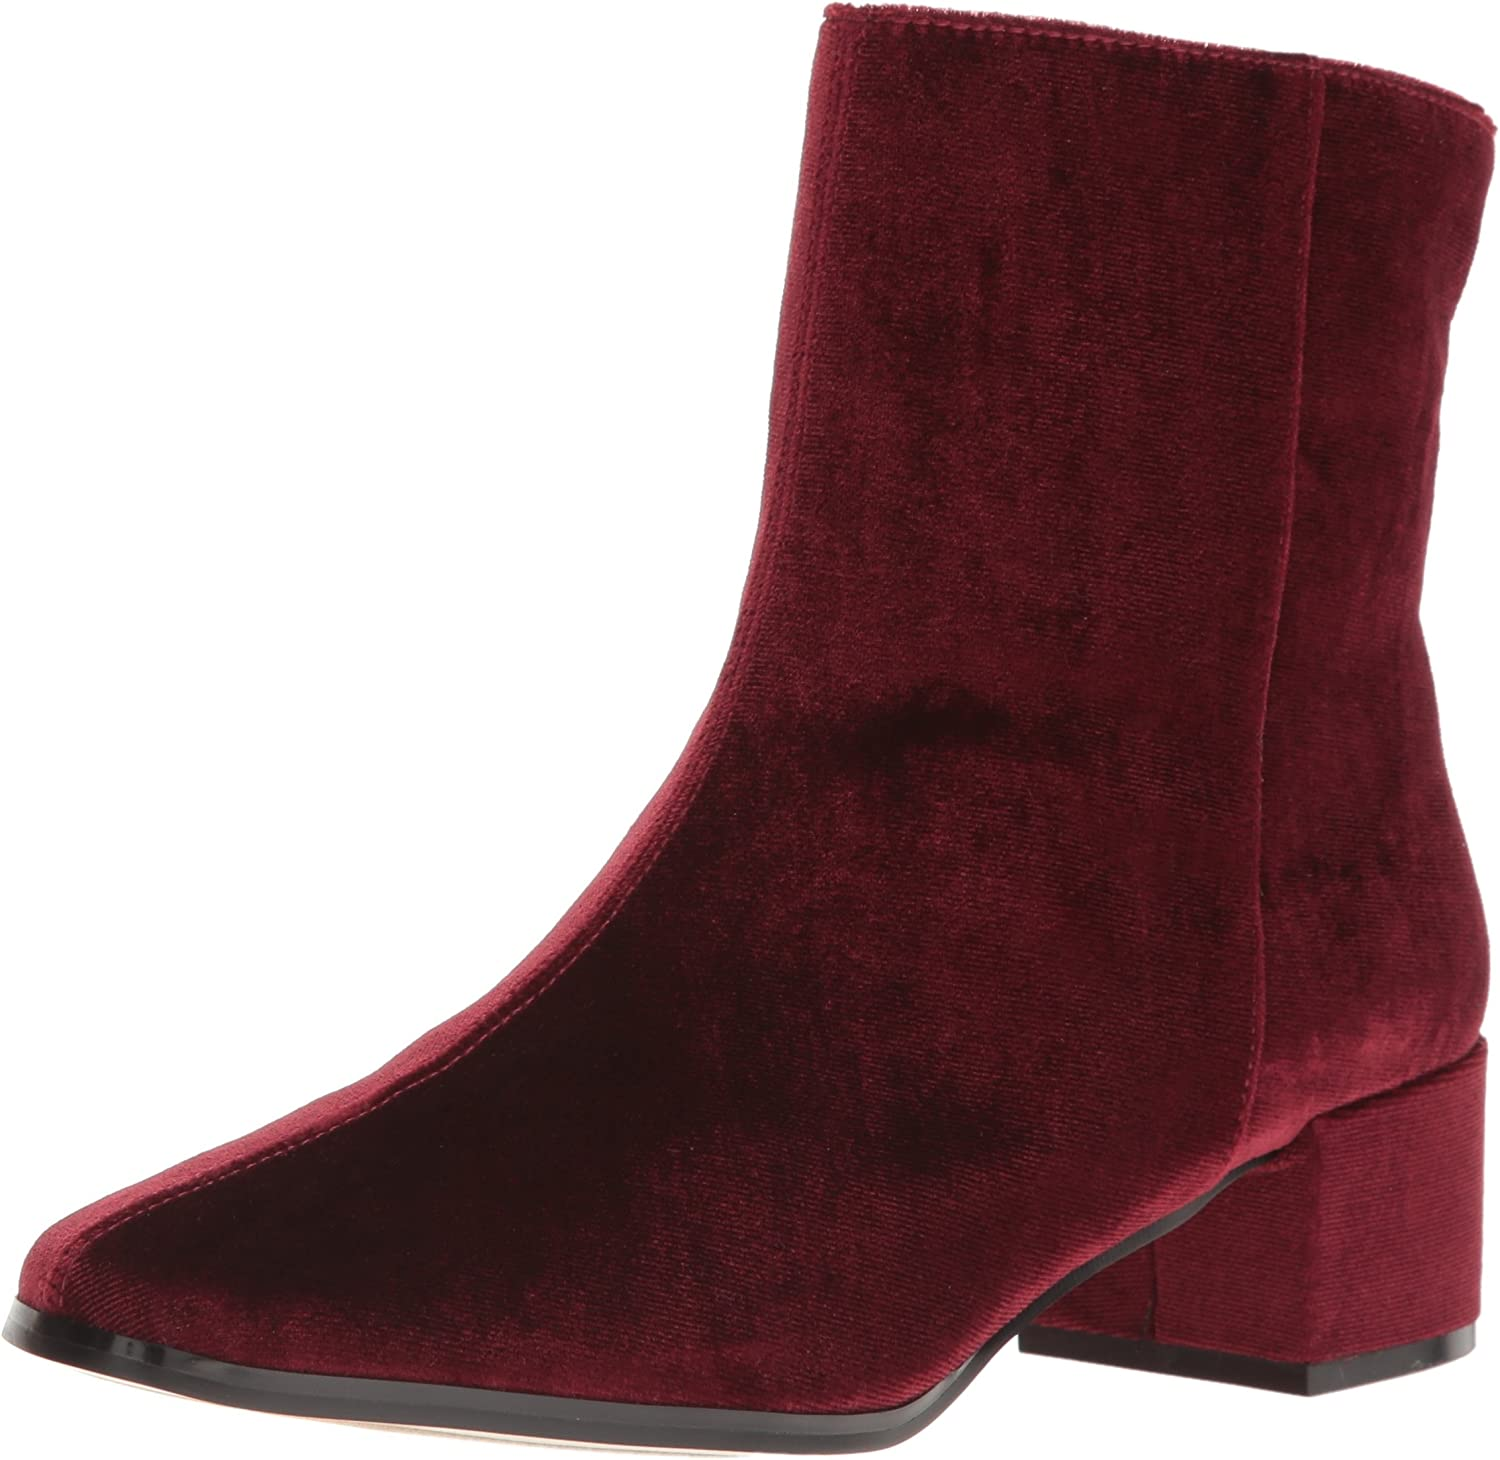 The Best Chinese Laundry Velvet Booties Women